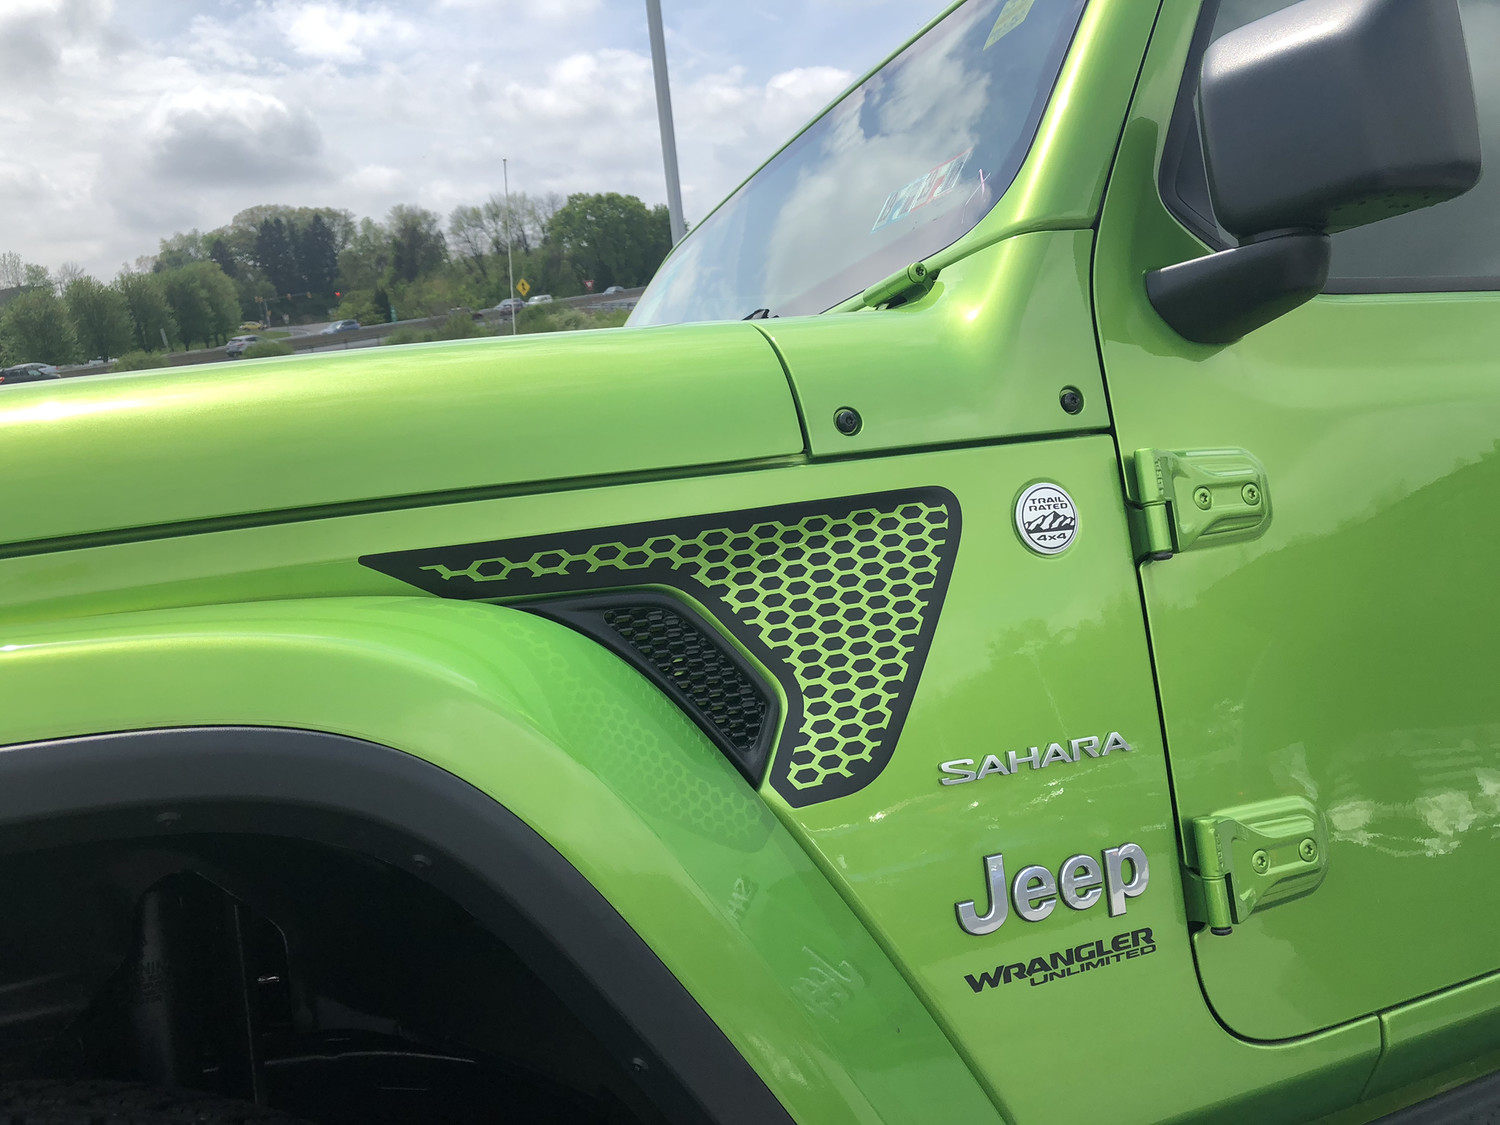 2018 - up Jeep Gladiator JT Wrangler JL JLU Gravity Style Fender Vent Blackout Vinyl Graphics